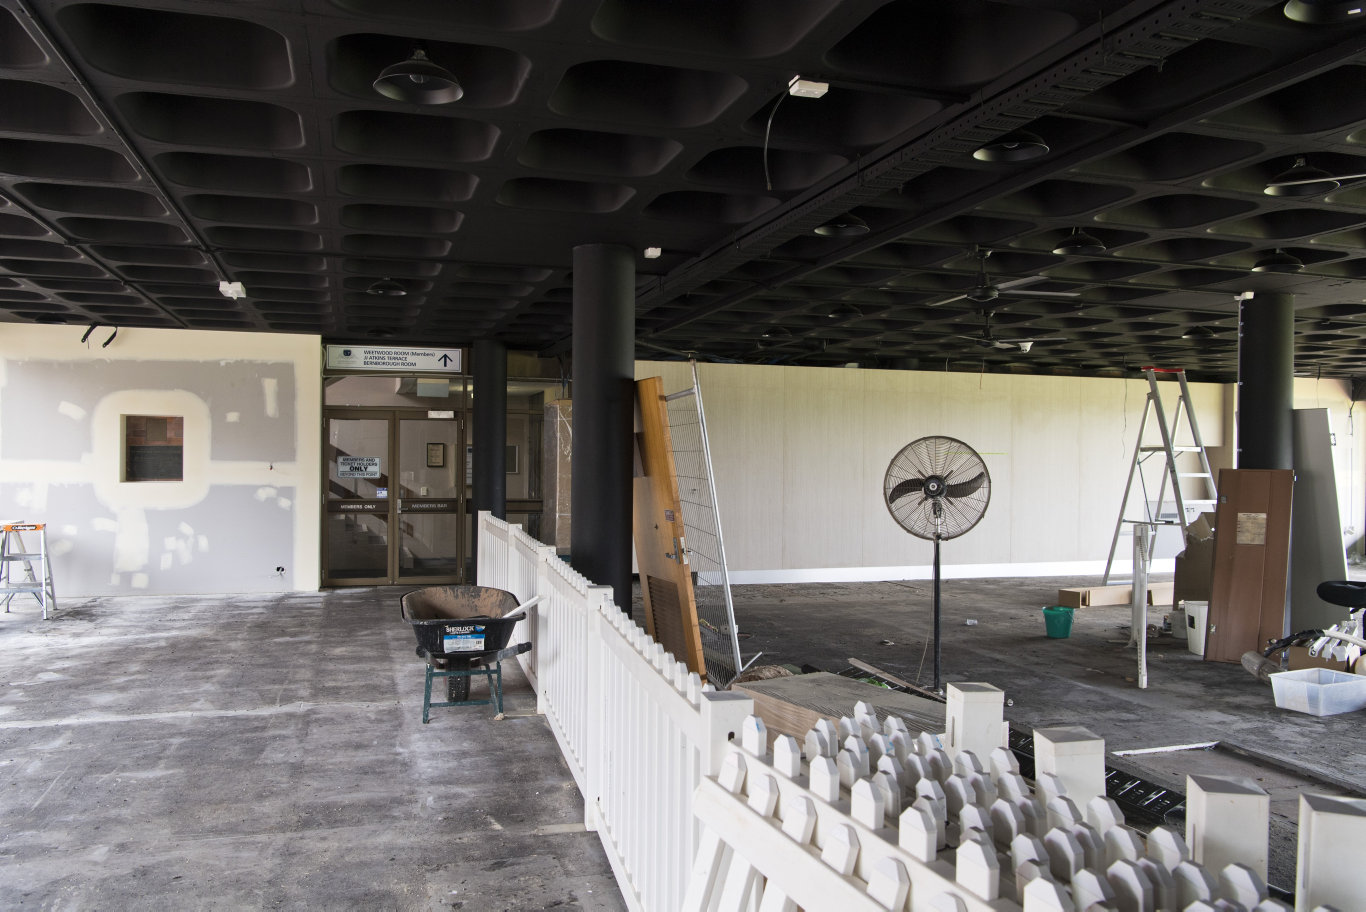 Toowoomba Turf Club renovates the betting auditorium for Clifford Park patrons, Friday, February 7, 2020. Picture: Kevin Farmer